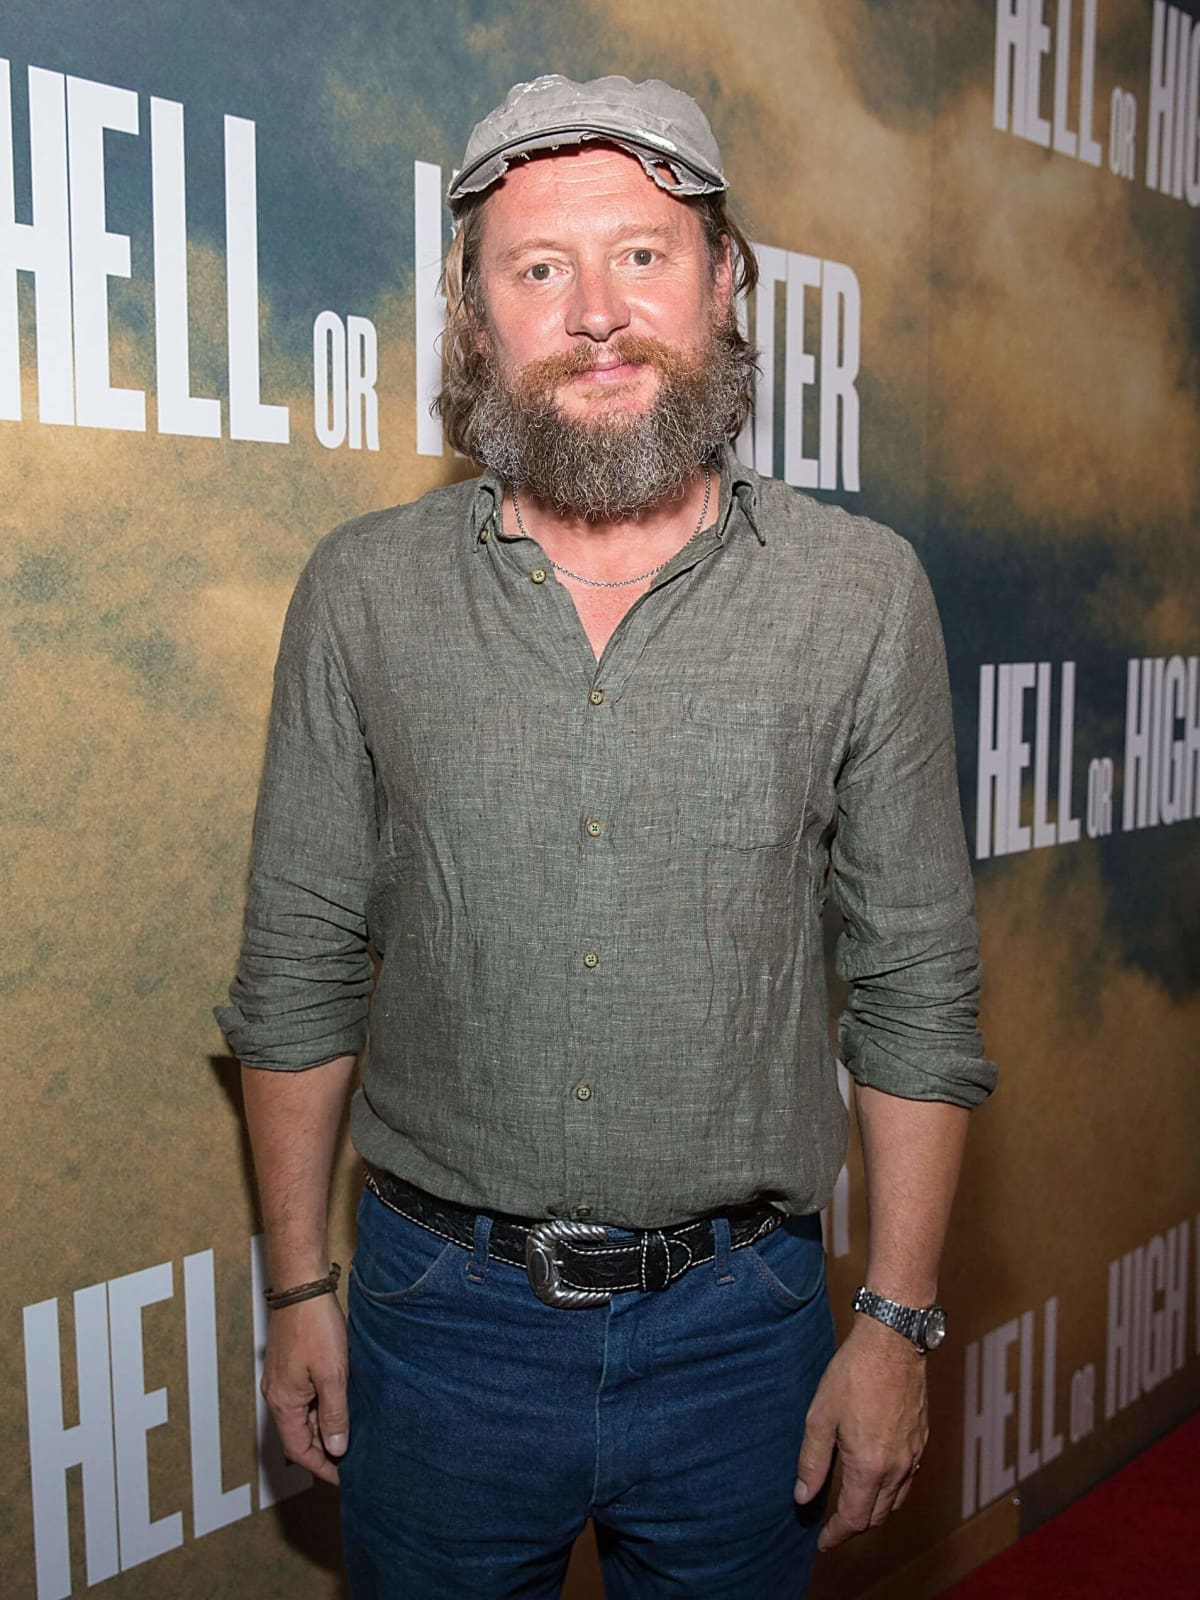 Hell or High Water Austin premiere Alamo Drafthouse red carpet David Mackenzie director